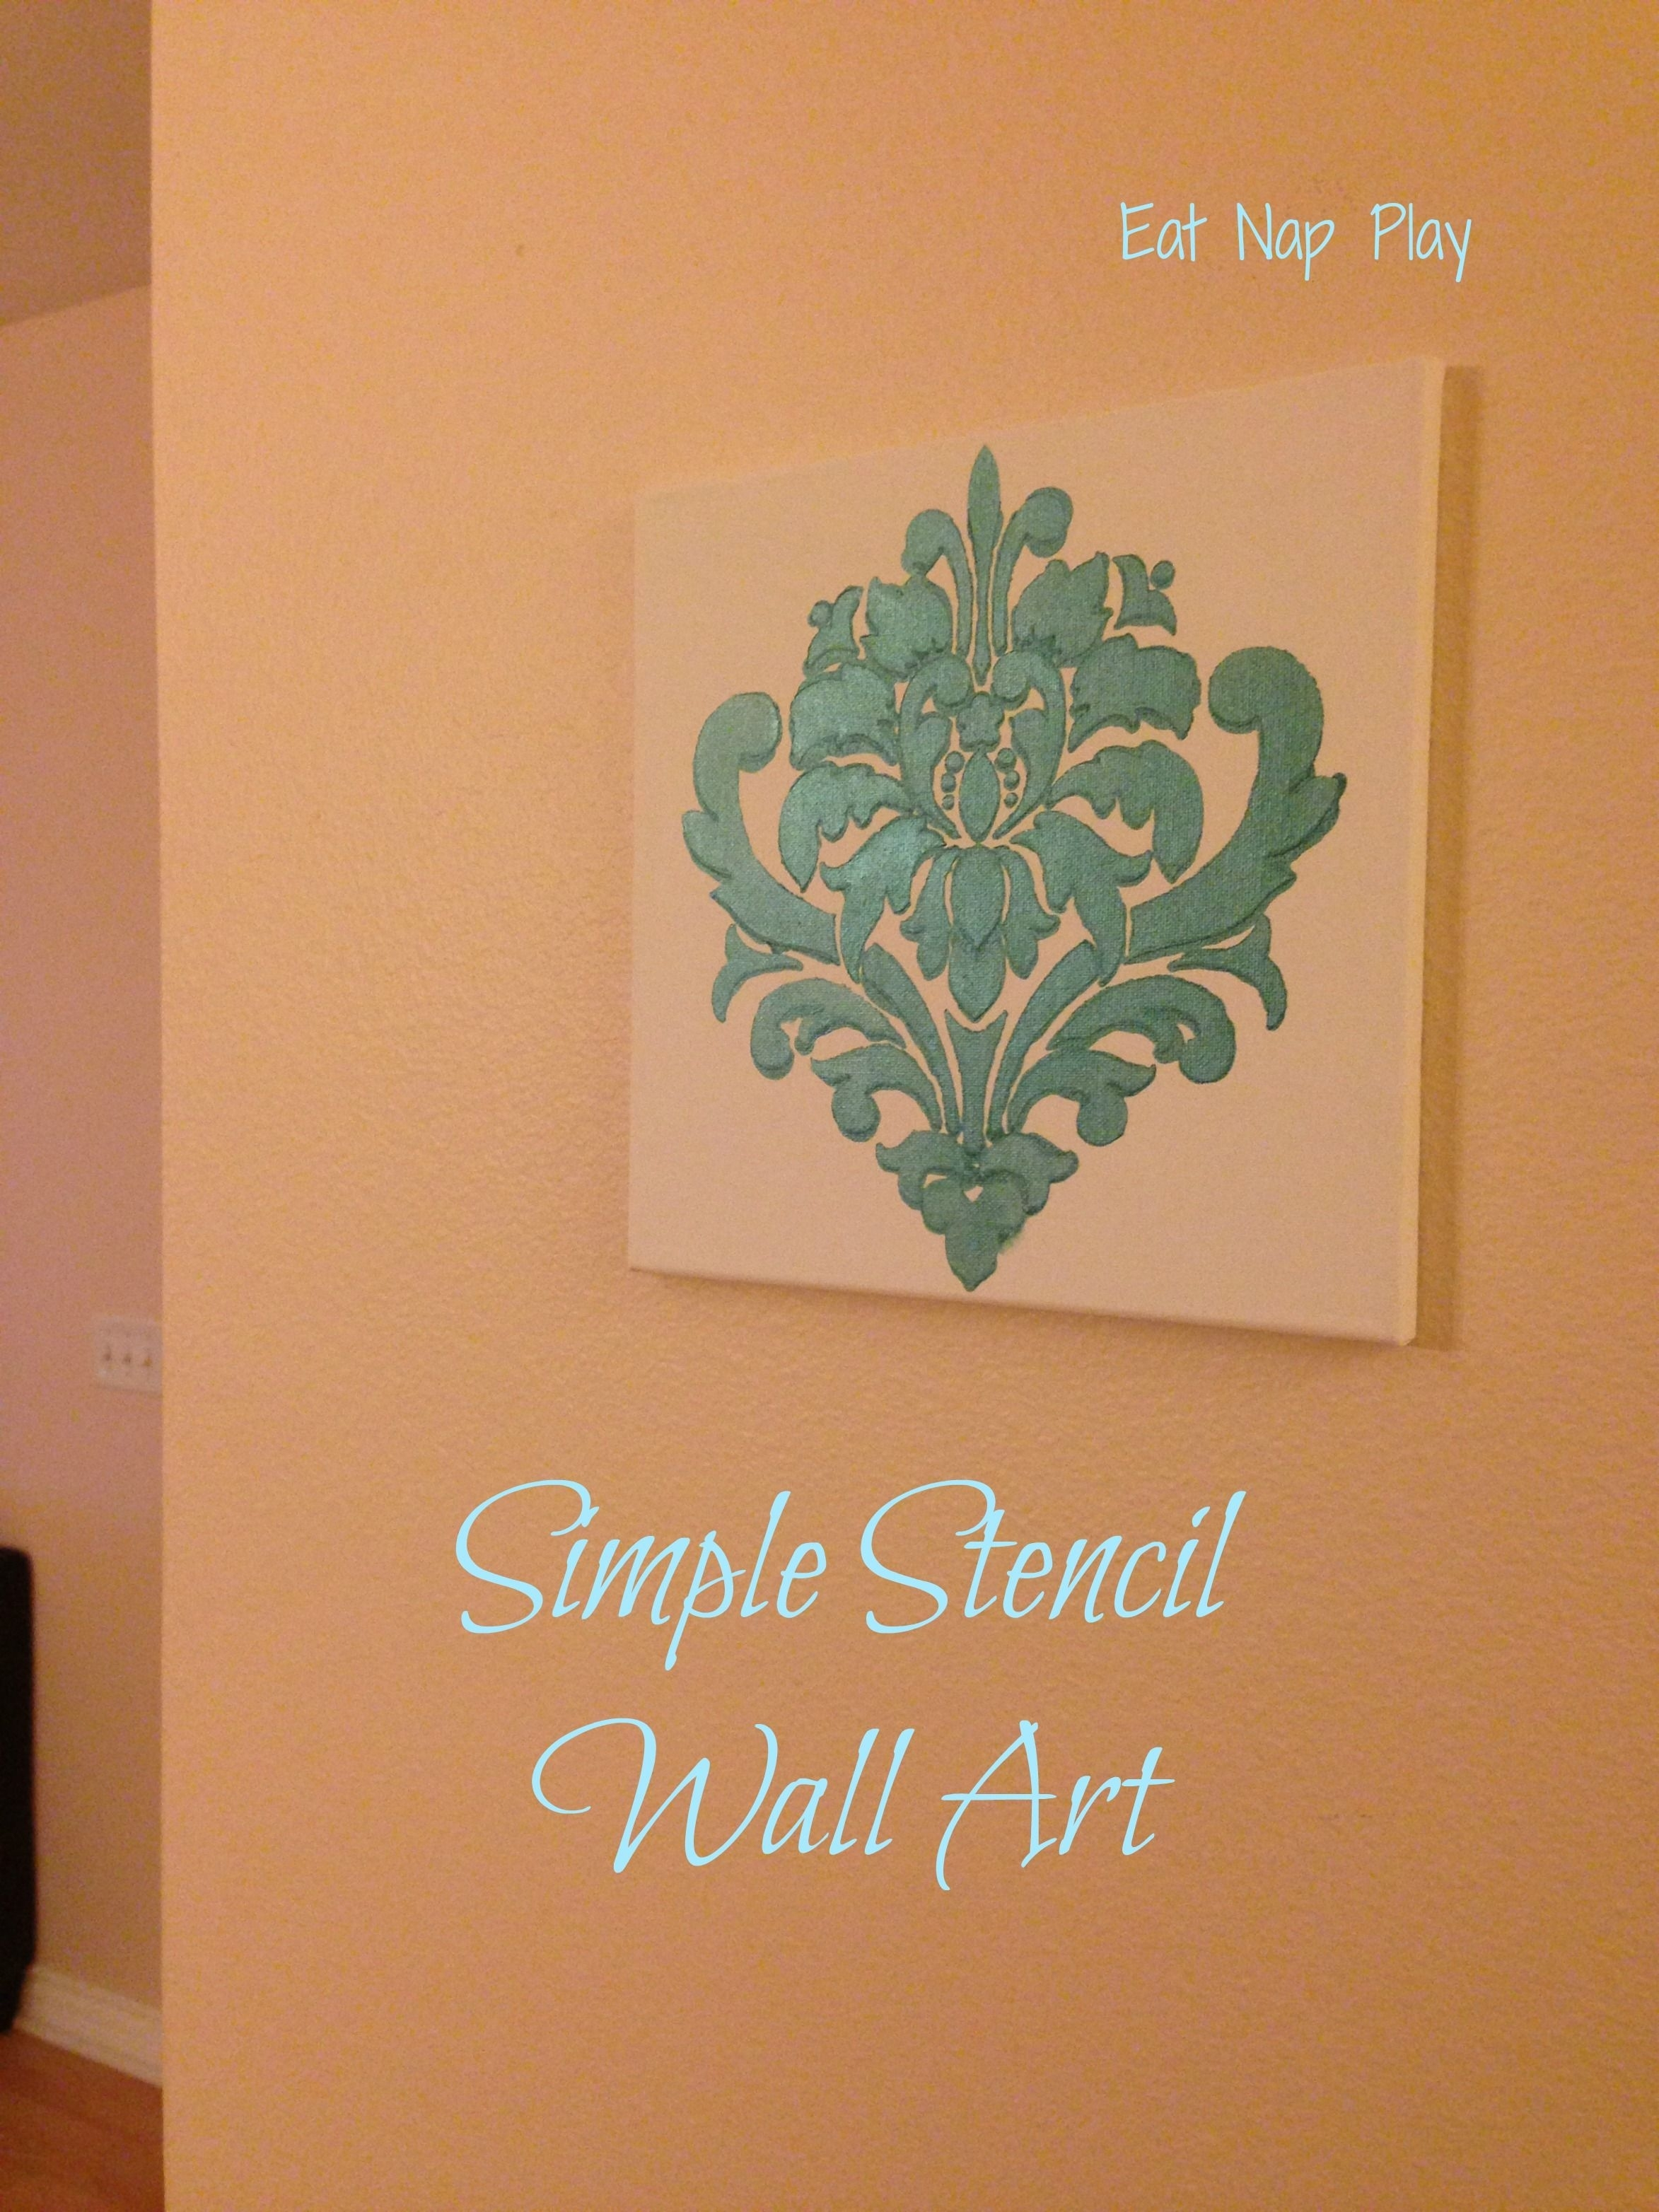 Wall Art (2346×3128) | Stencil | Pinterest | Stenciling With Newest Stencil Wall Art (View 20 of 20)